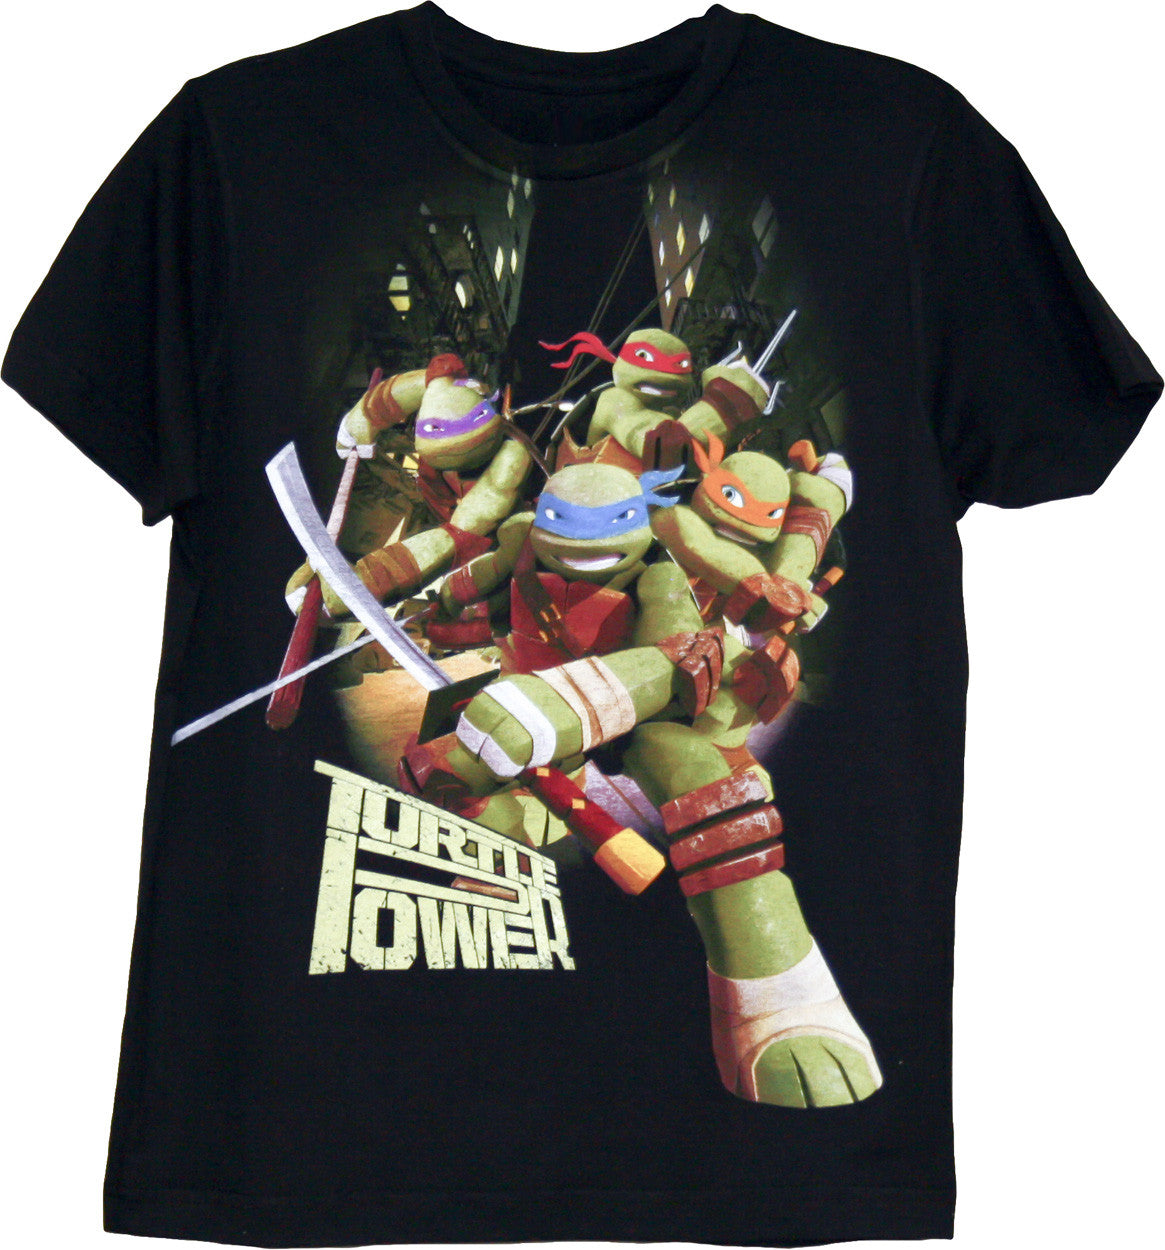 Teenage Mutant Ninja Turtles Turtle Power T-shirt